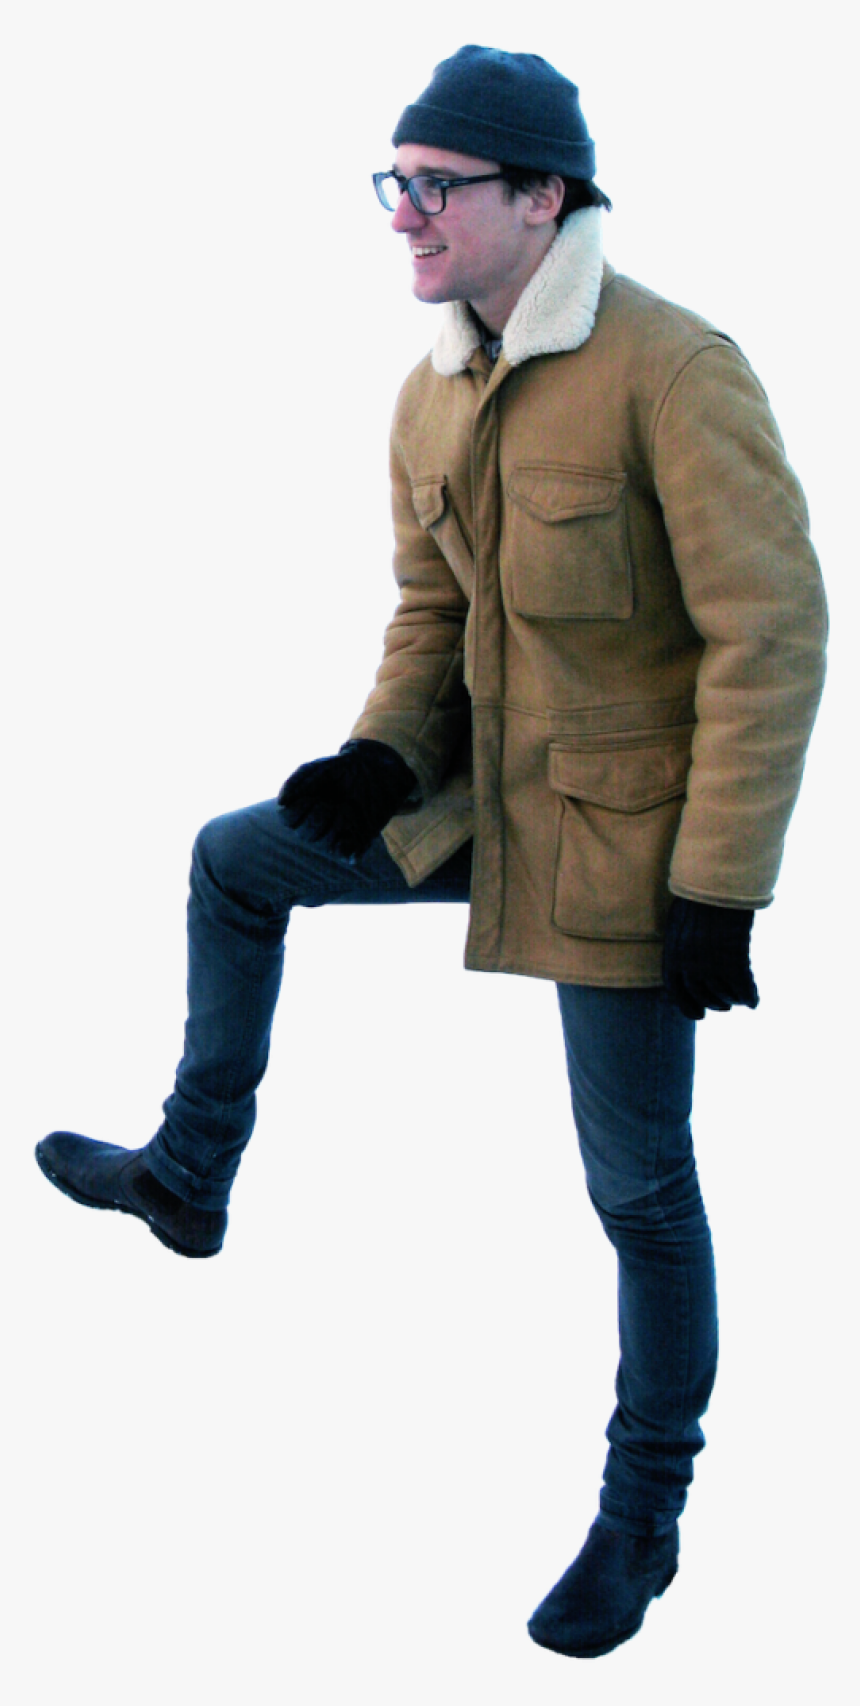 Standing Winter Png Image - Winter People Cut Out, Transparent Png, Free Download